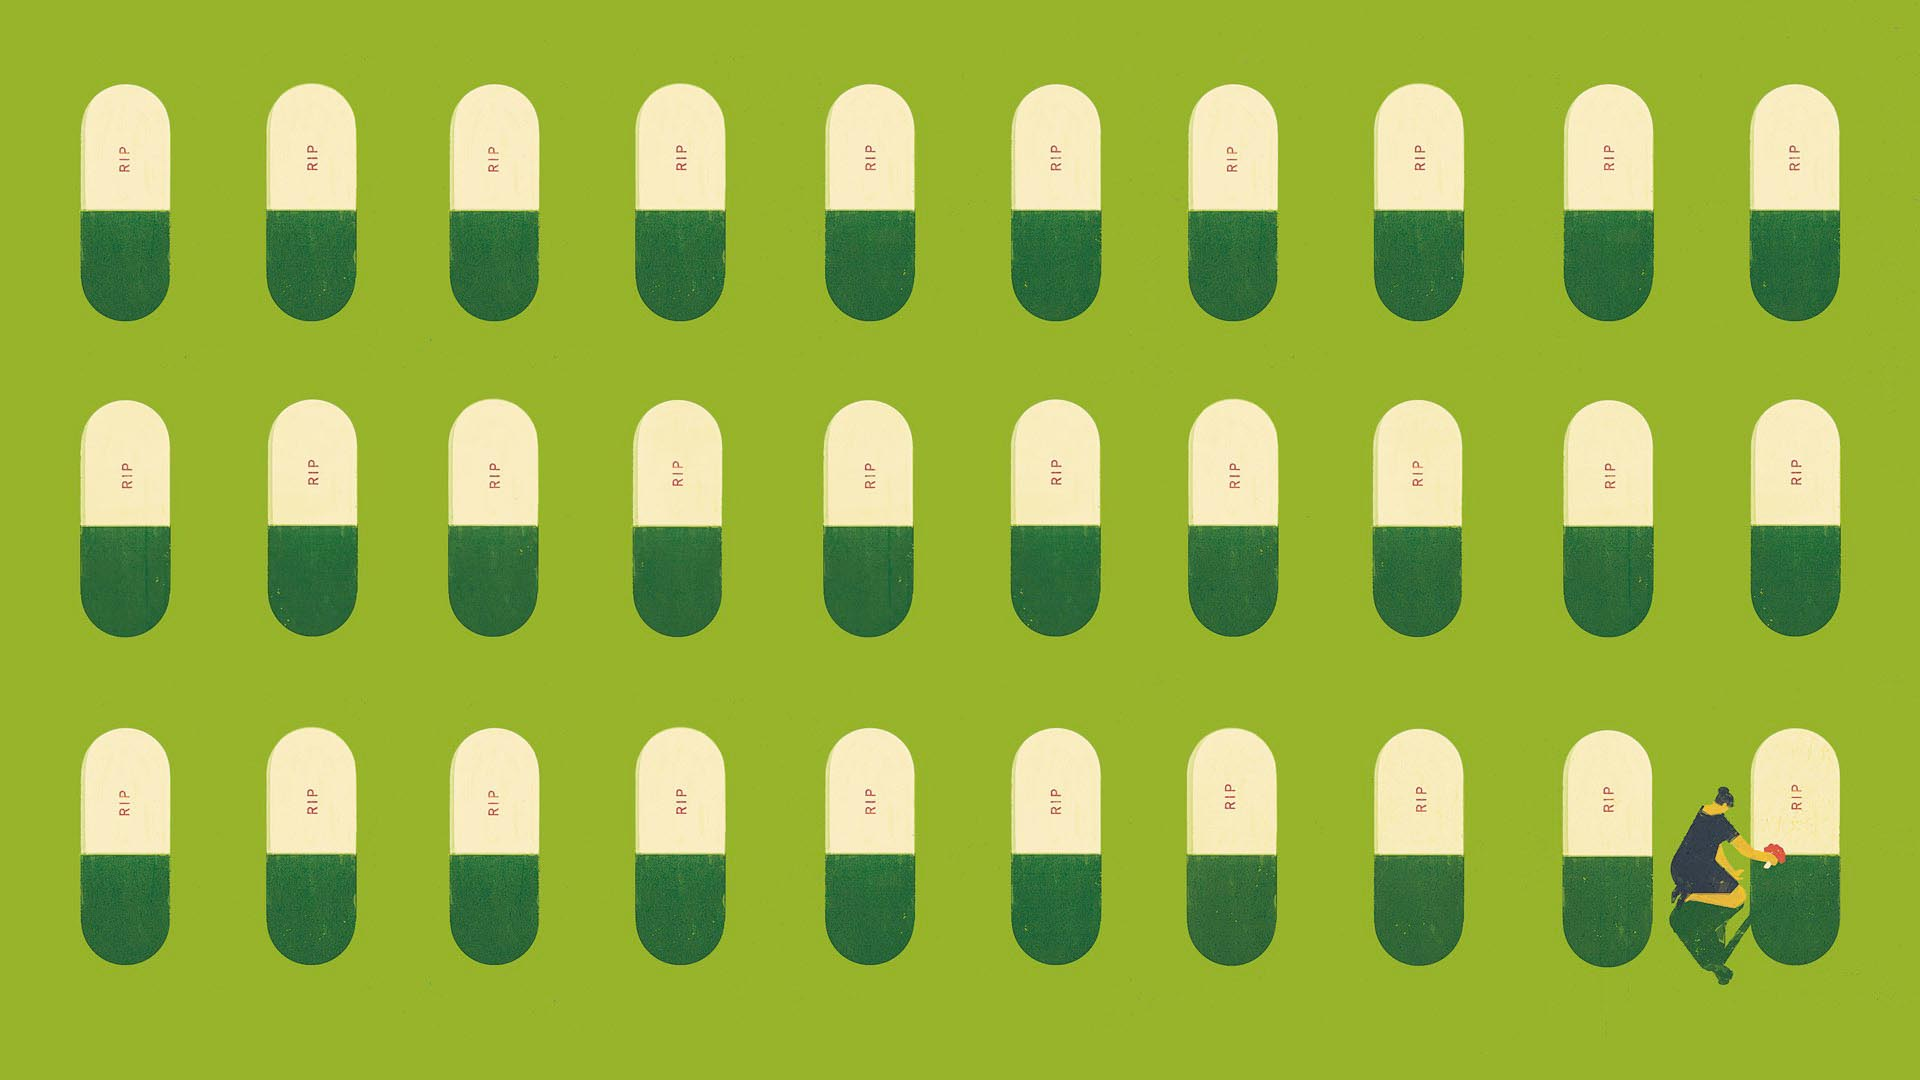 Photo illustration of a row of capsules resembling tombstones with RIP written on them and a woman placing flowers on one